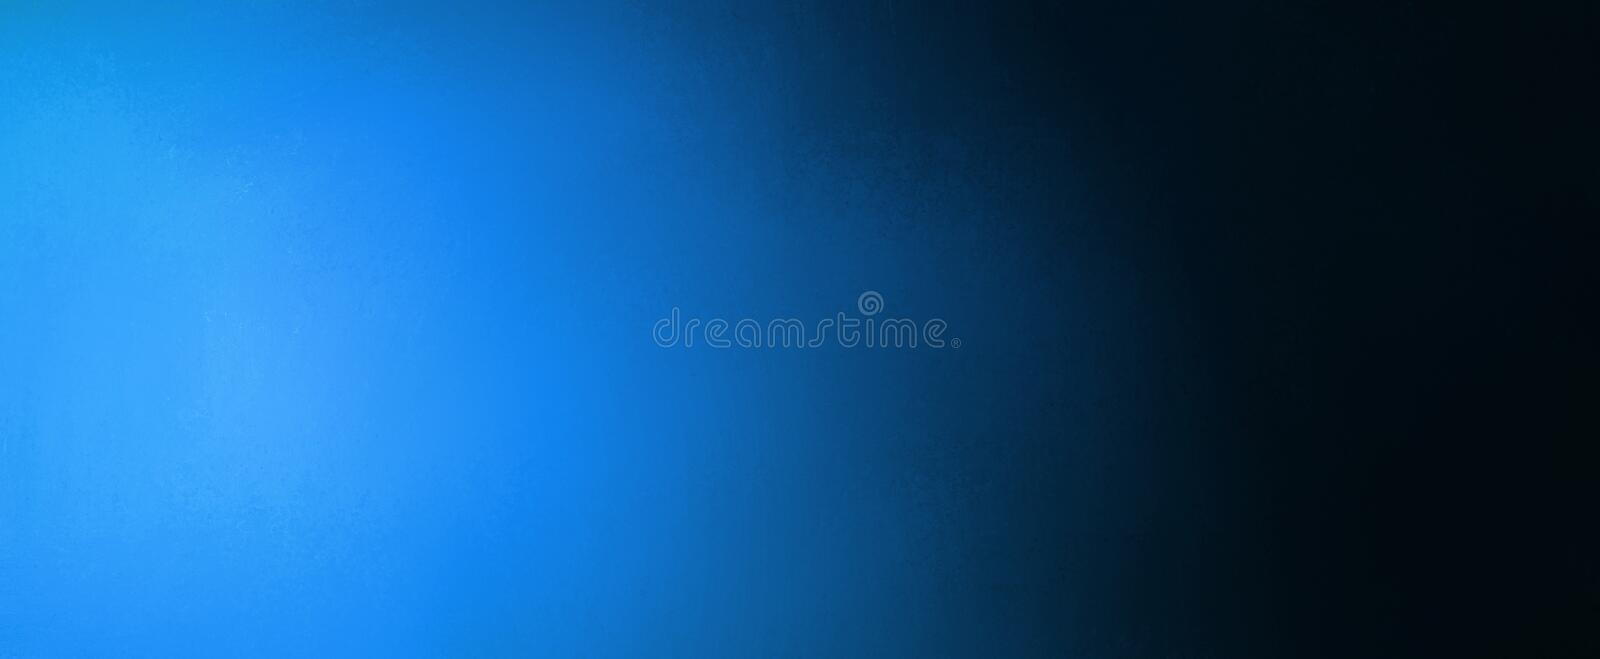 Abstract blue and black background banner with bright blue spotlight and gradient colors royalty free stock image